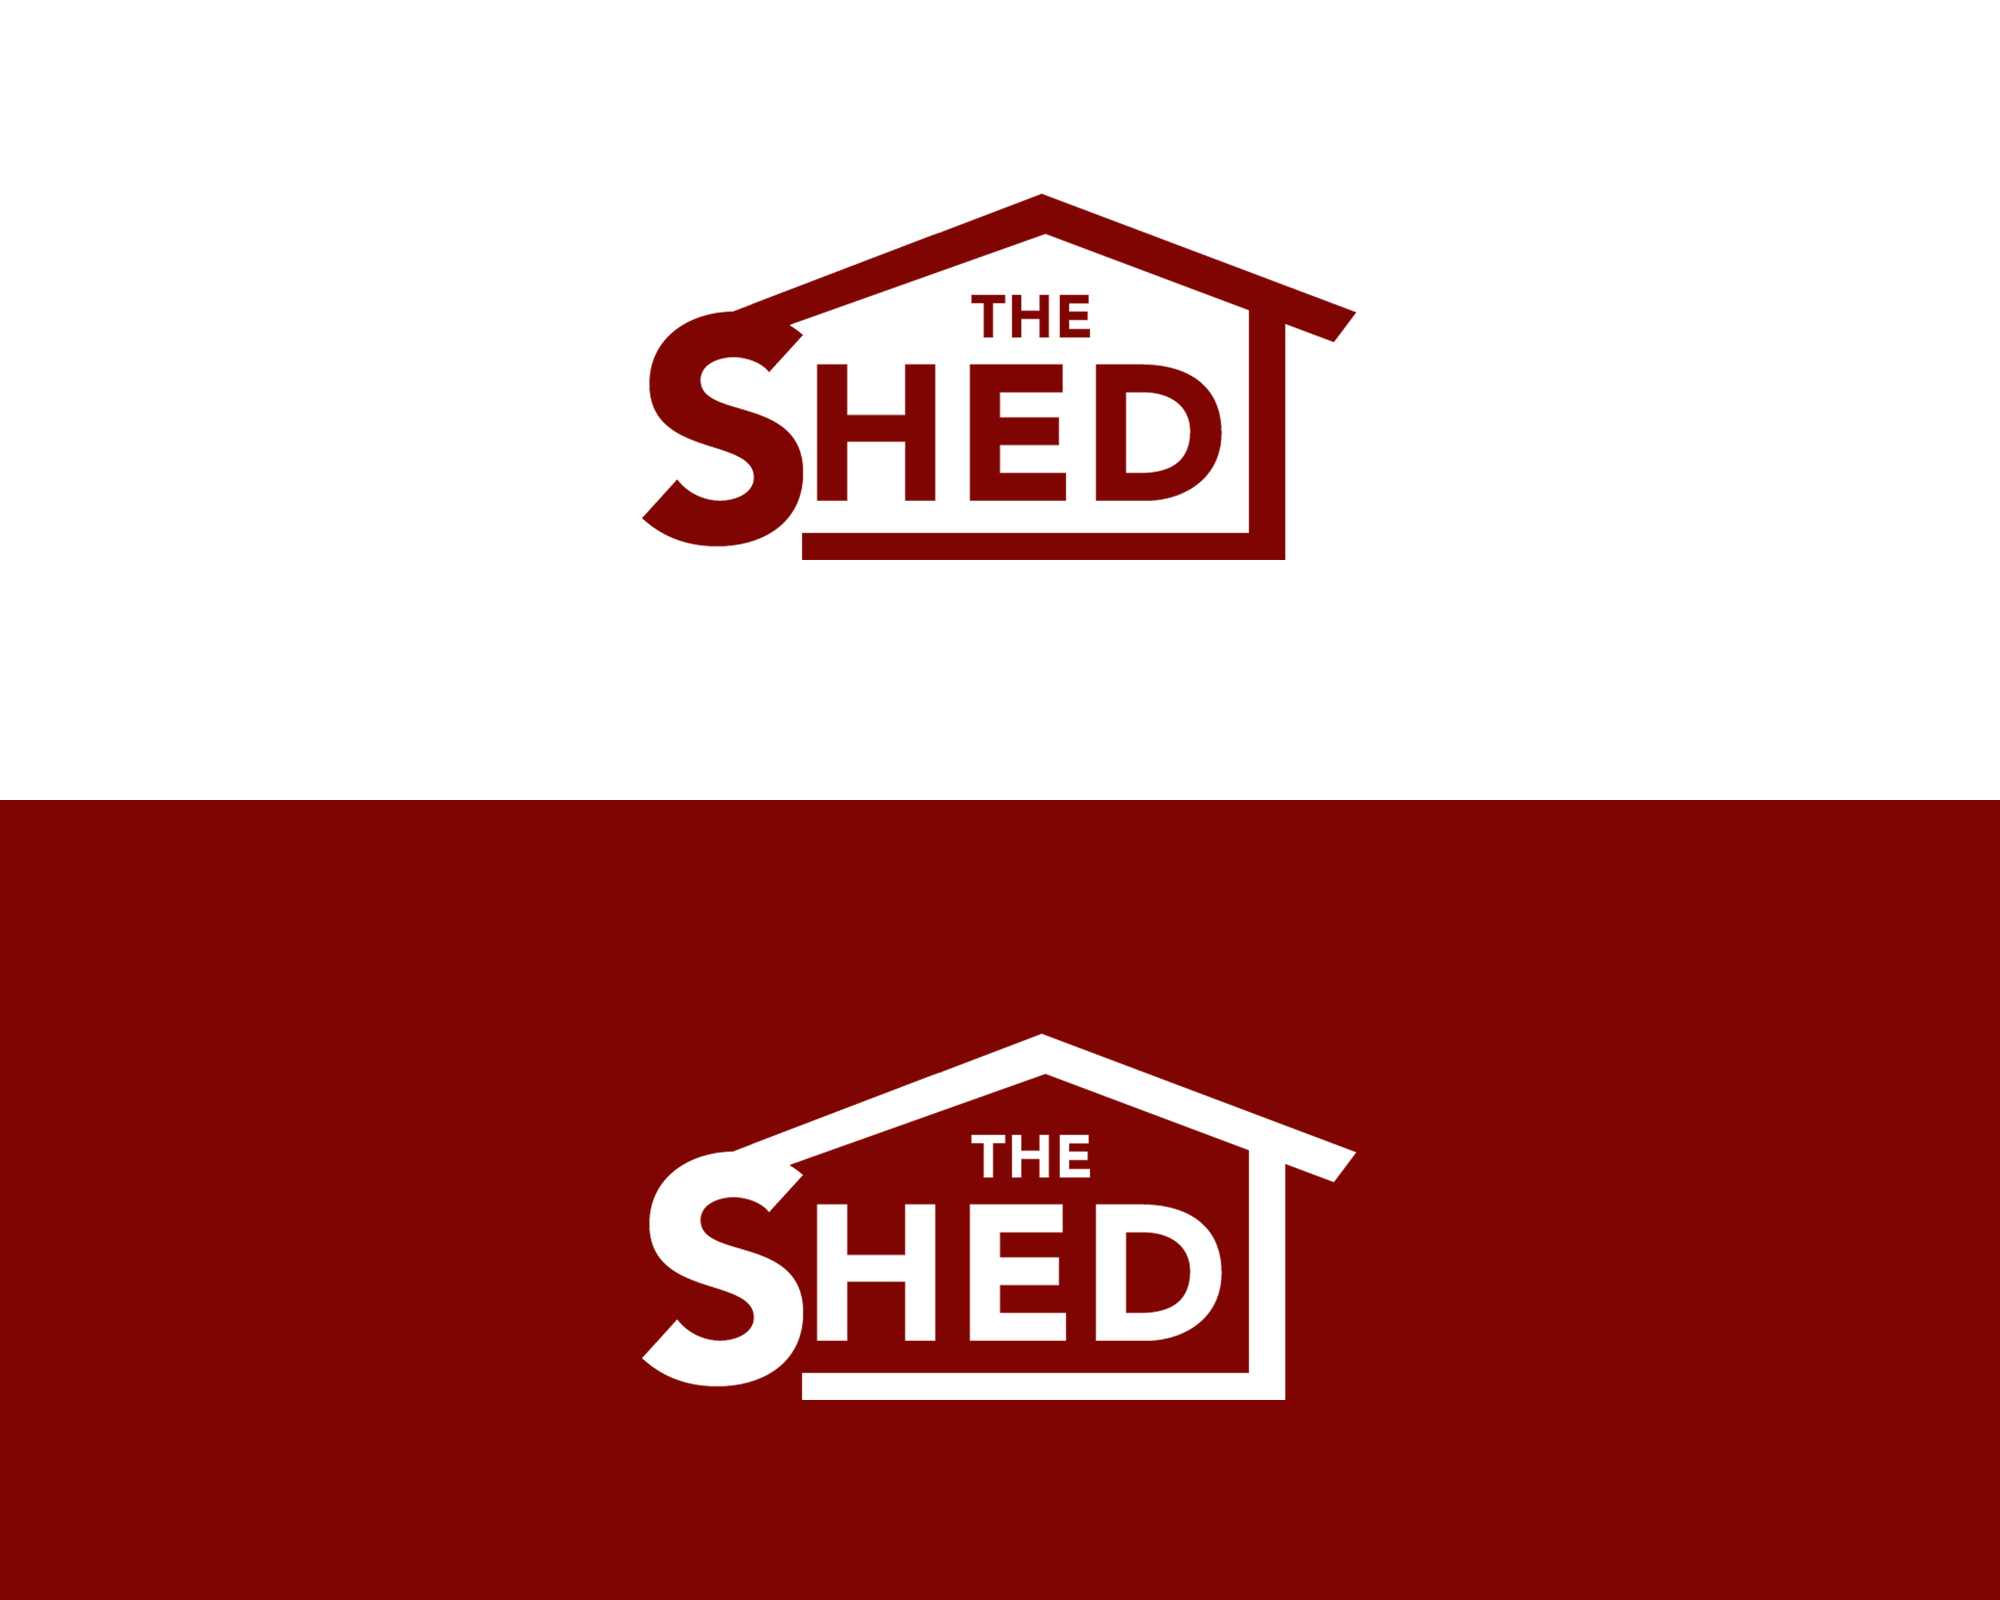 The Shed - design #1742085